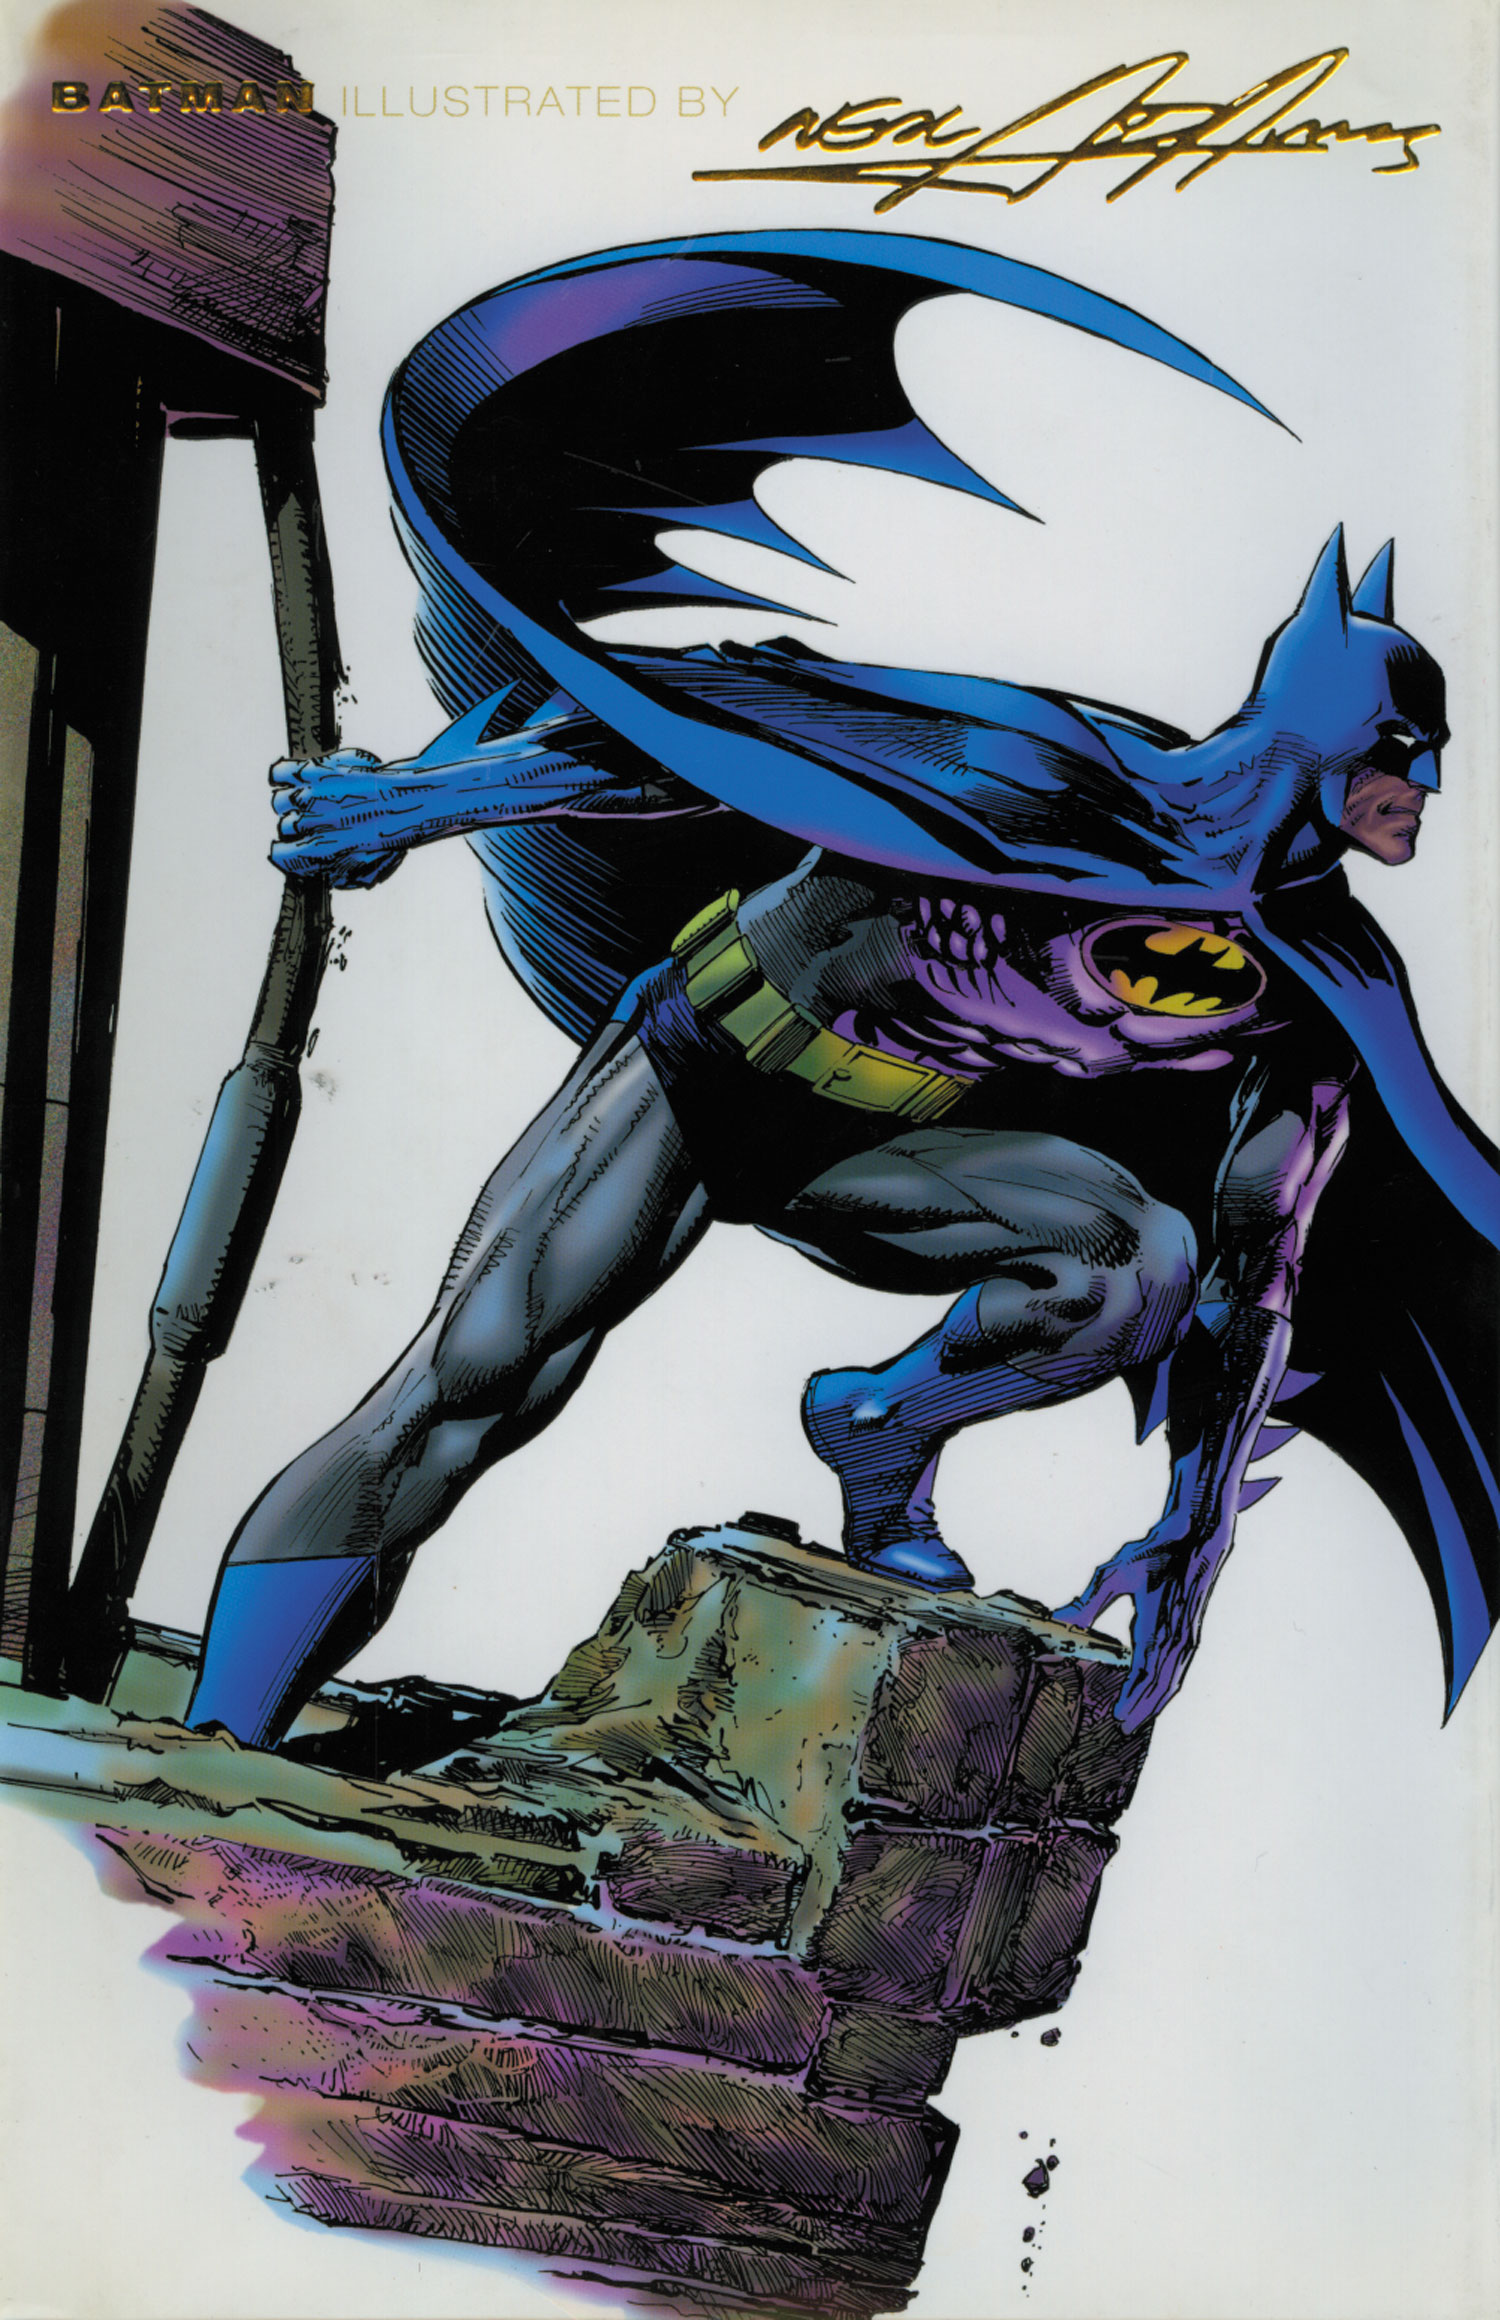 Batman Illustrated by Neal Adams Vol 3 (Collected)